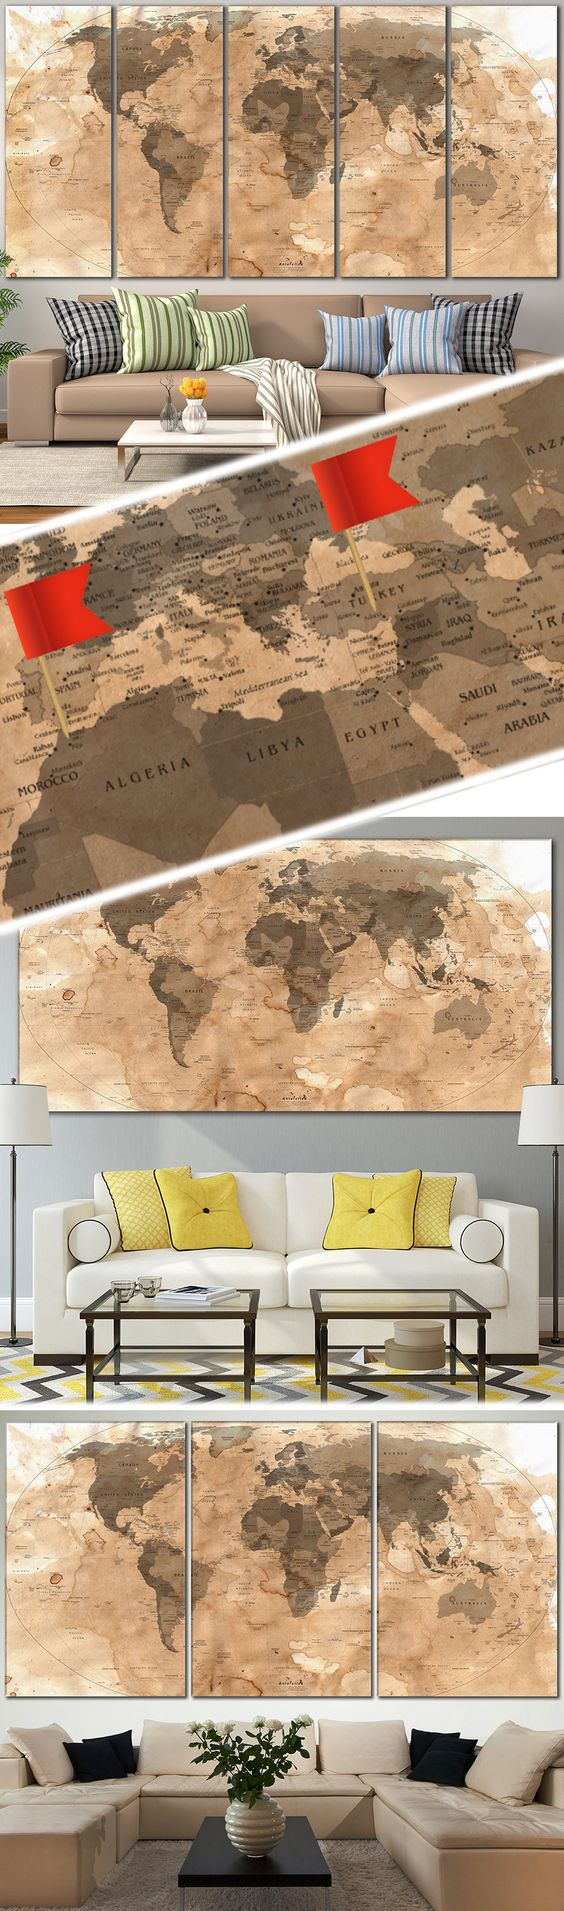 Push pin world map 800 canvas print zellart canvas arts map creative world map canvas prints wall art for large home or office wall decoration sale gumiabroncs Gallery